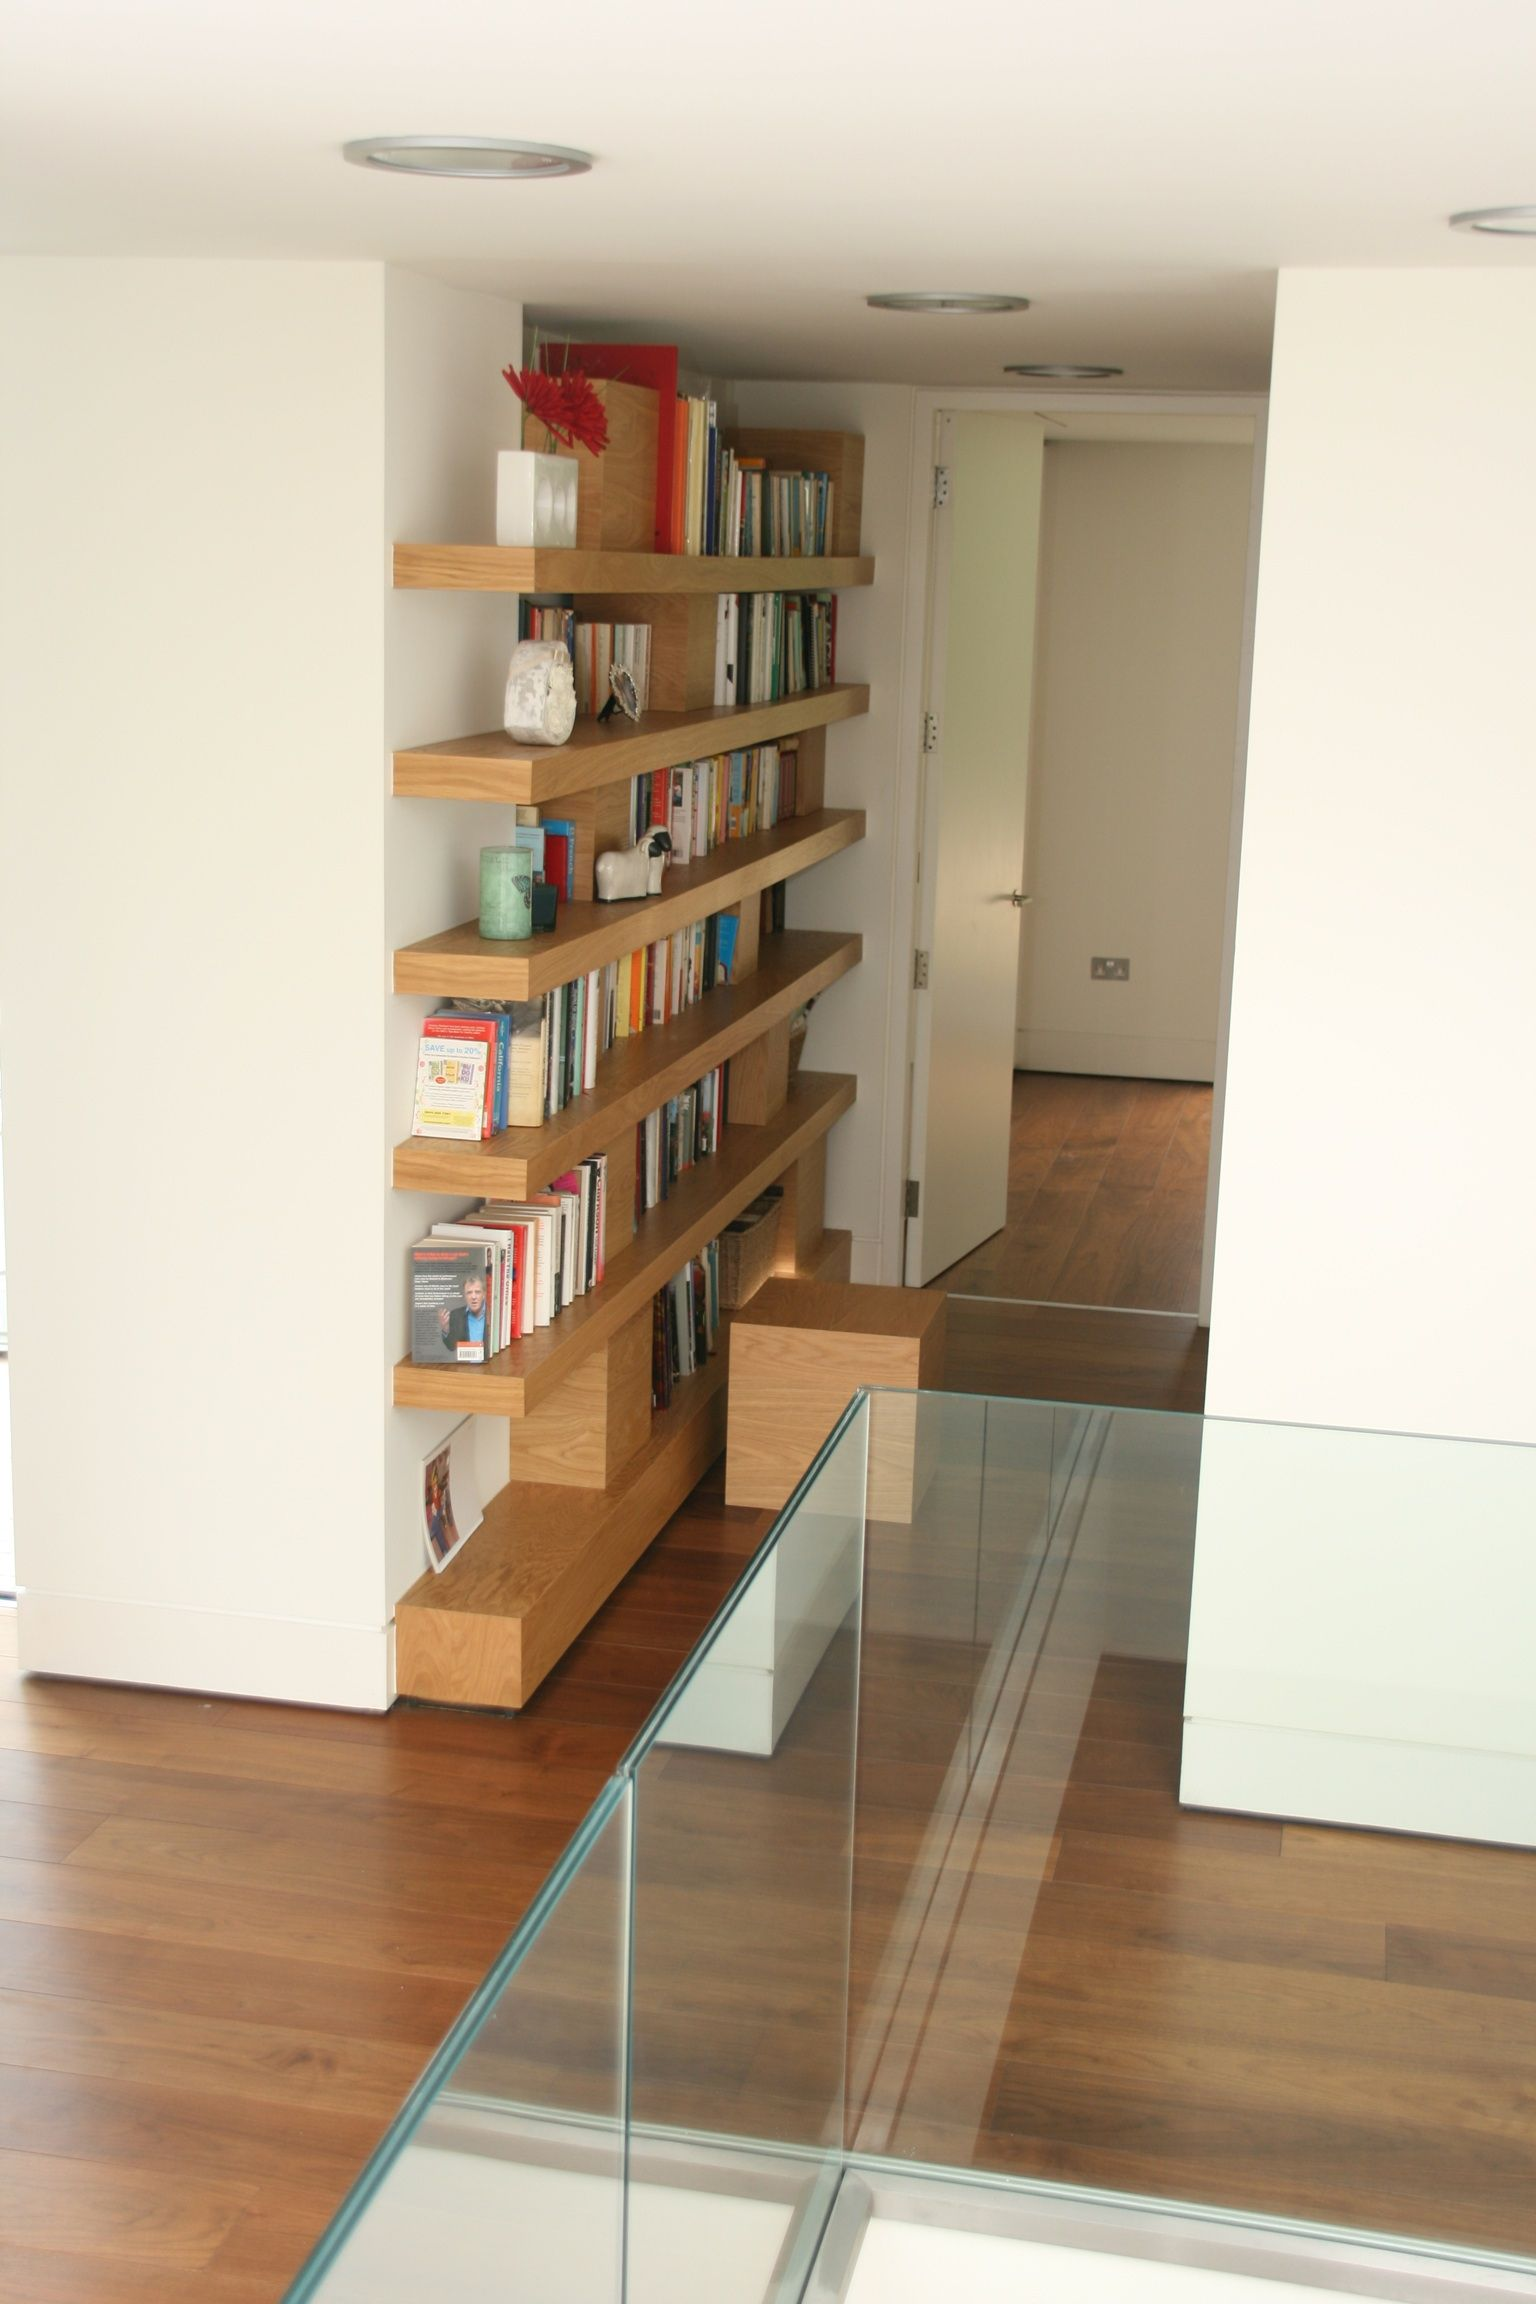 Oak Floating Shelf Bookcase With Removable Cube Book Ends That Can Also Be Used As Seats